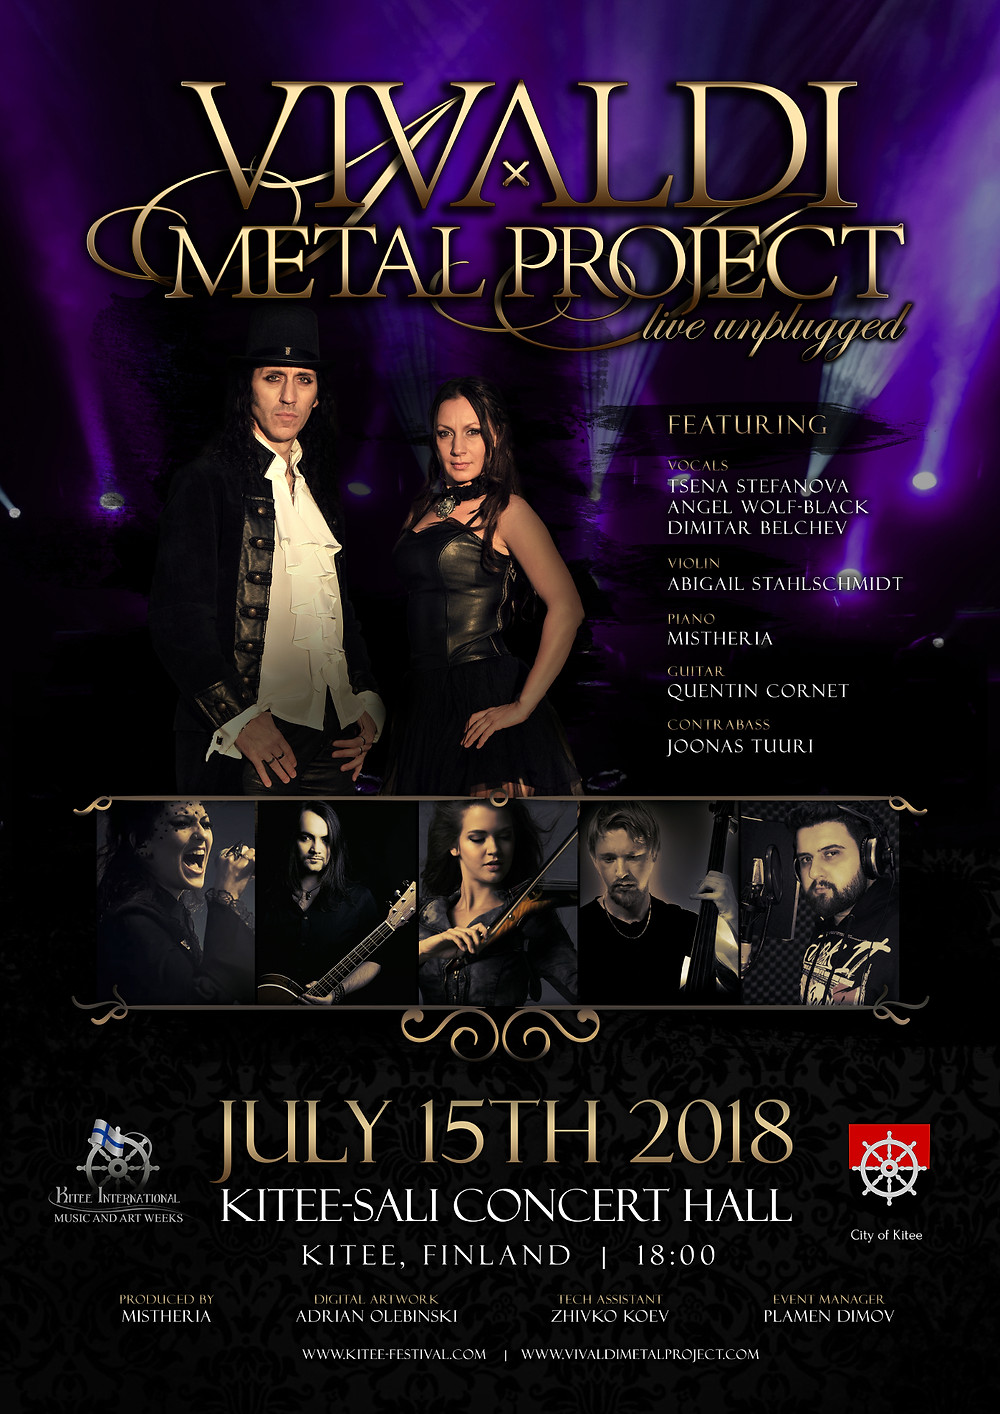 Vivaldi Metal Project Special Unplugged Show Live at Kitee International Music and Art Festival on July 15th 2018 Finland